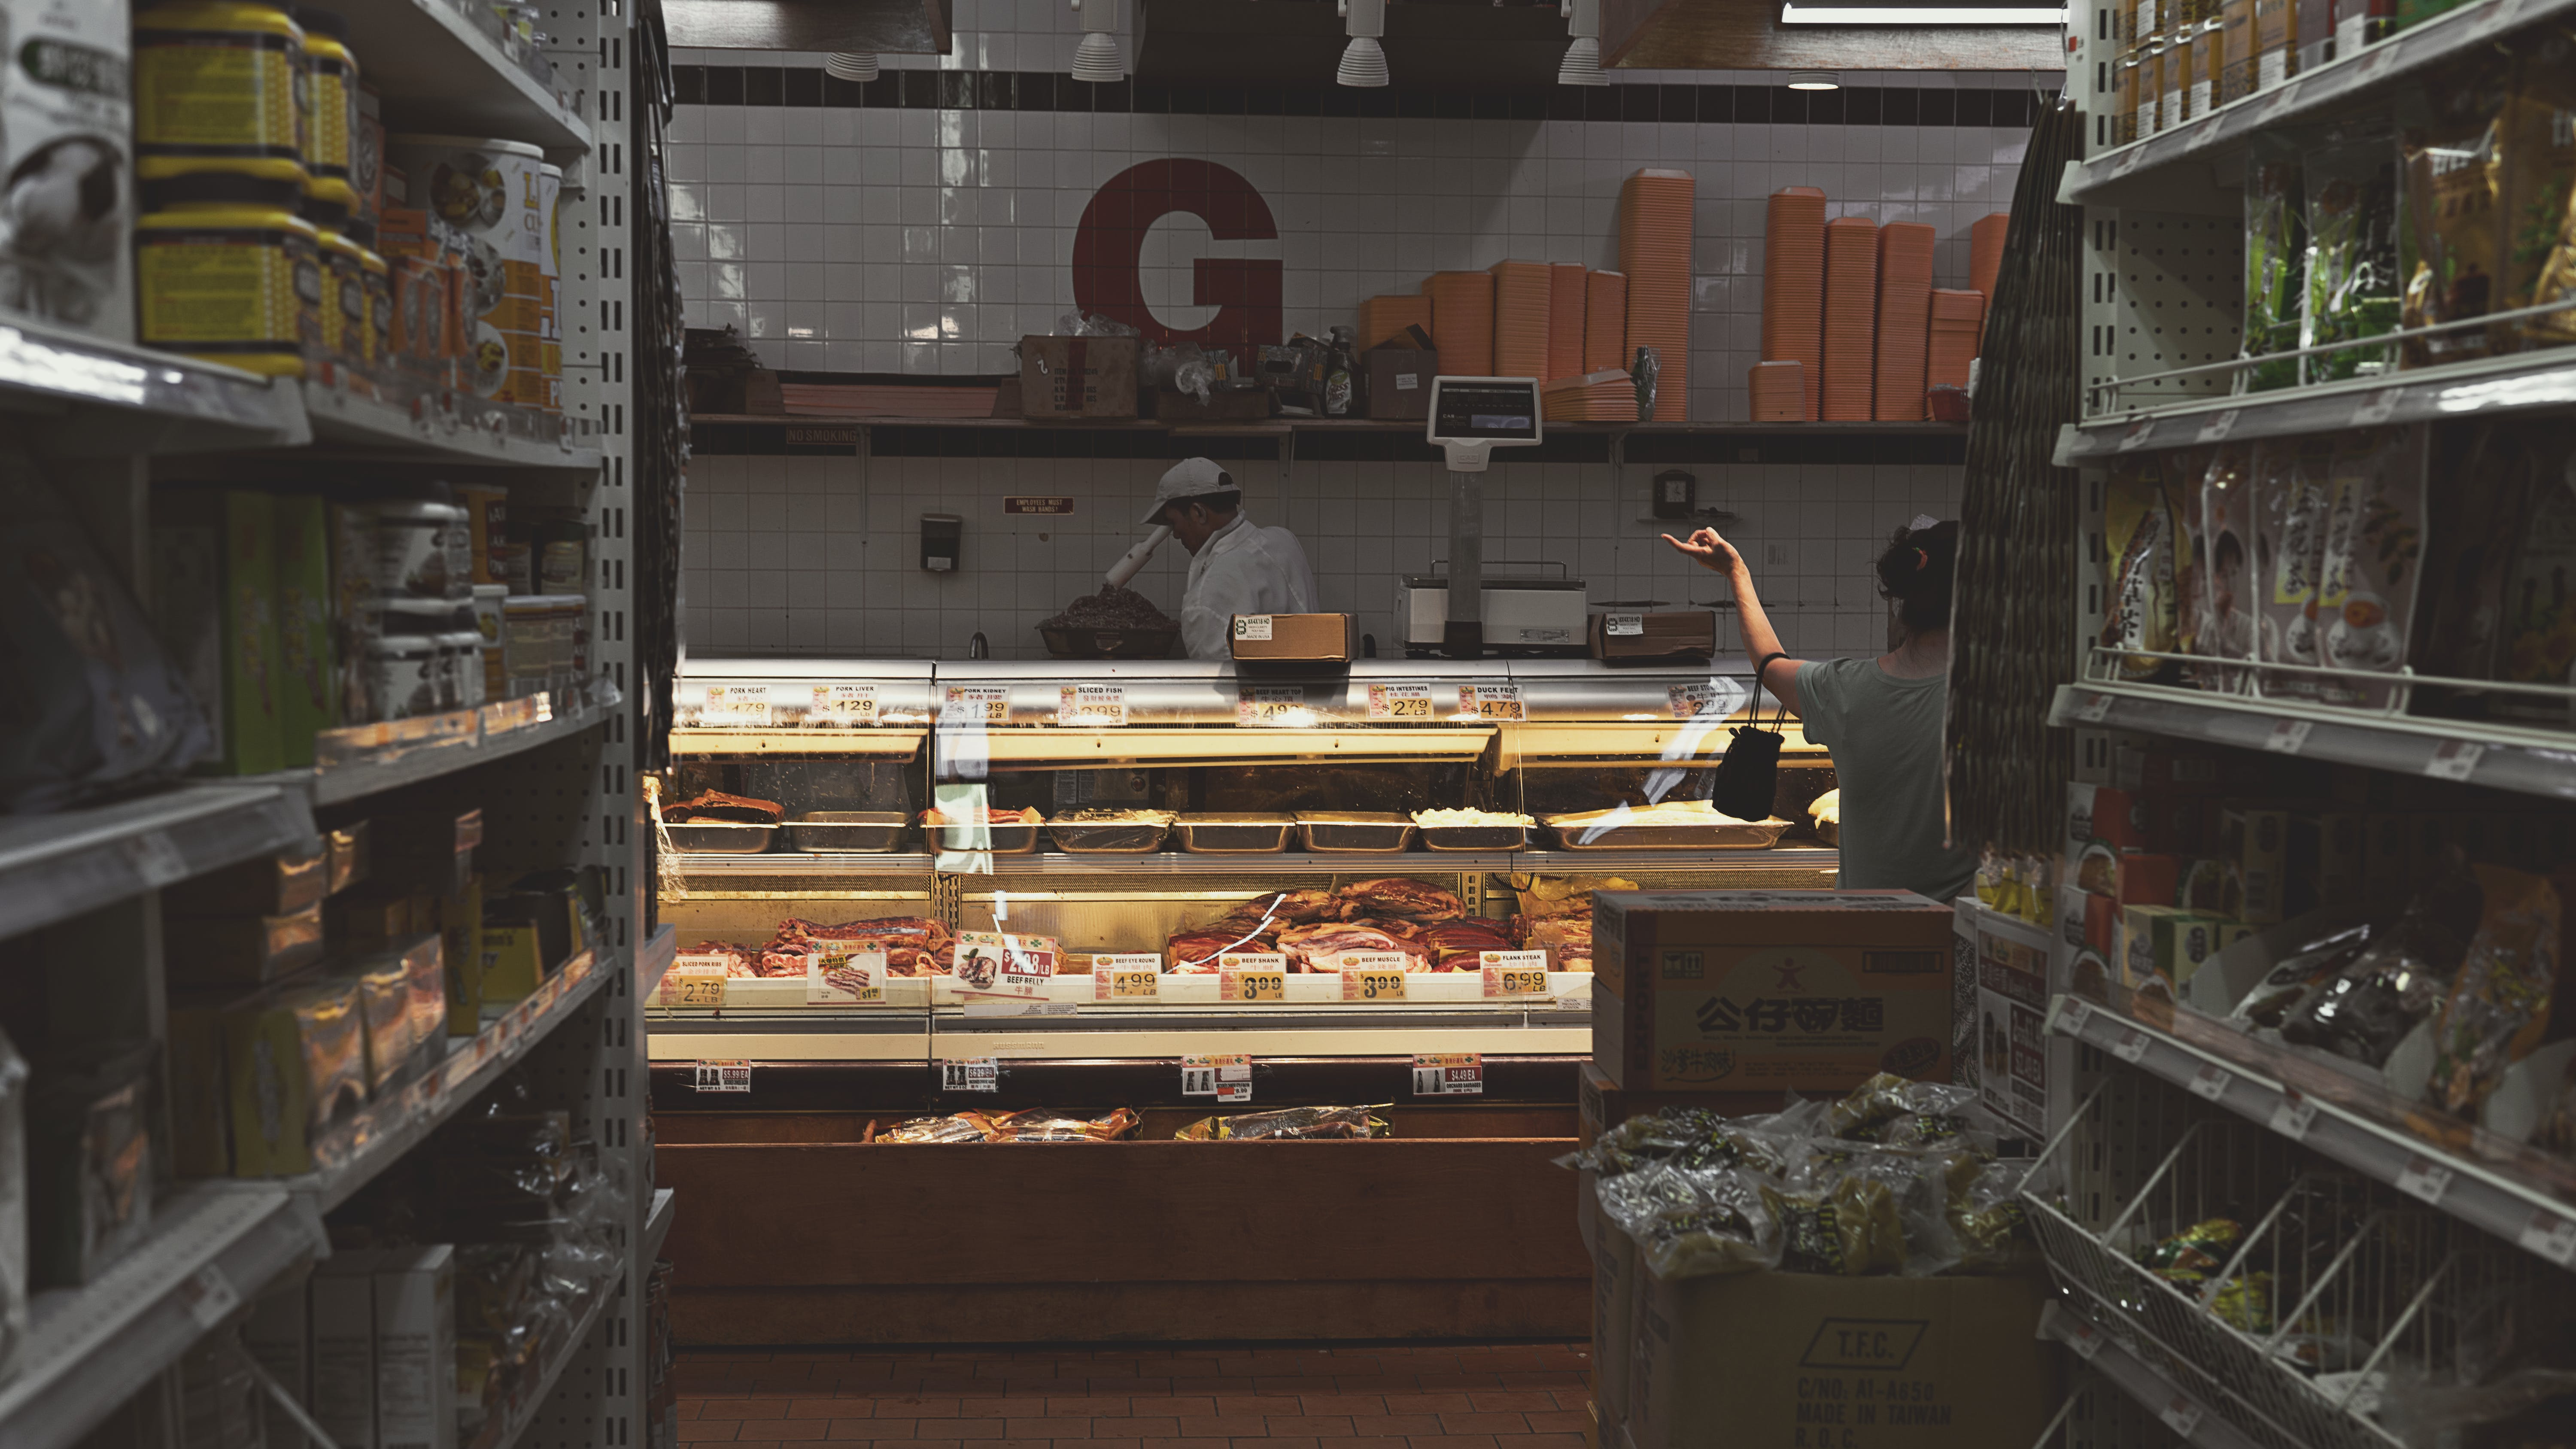 Free stock photo of supermarket, meat, Asian